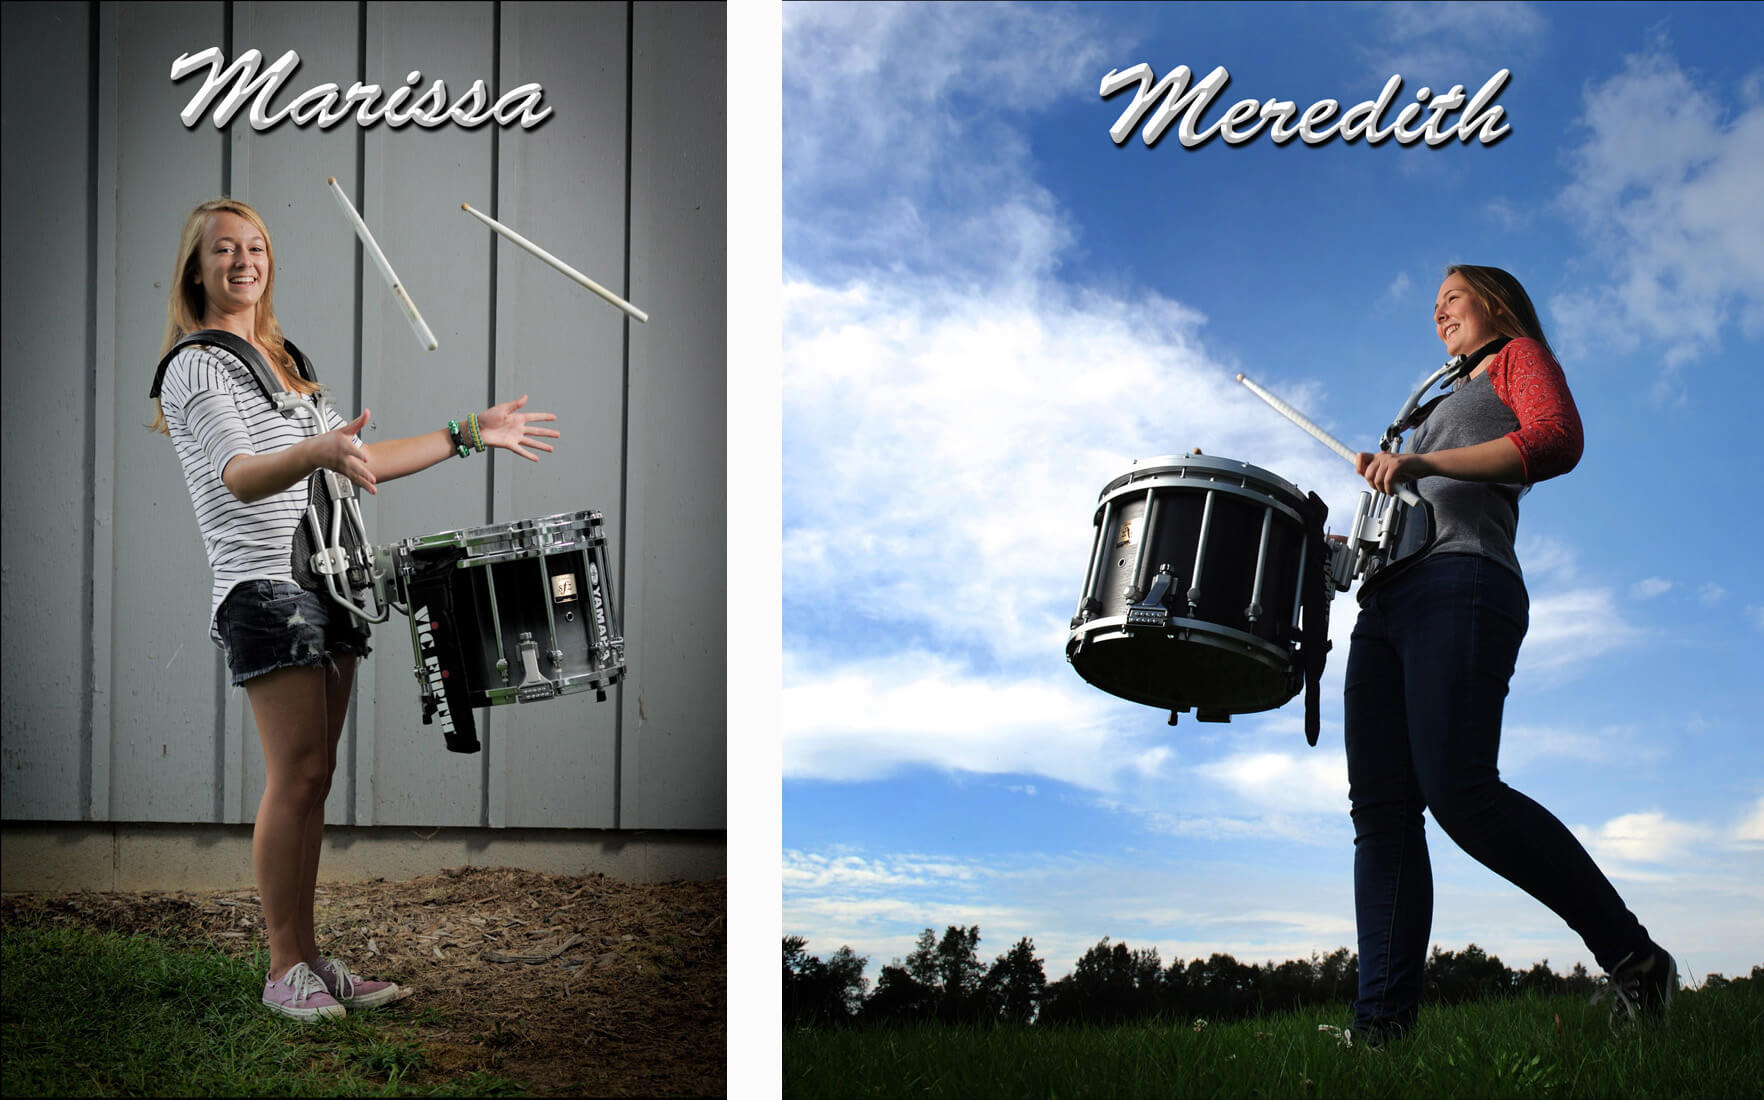 Classic, artistic photography doesn't mean is isn't fun photography. Here are two ways I photographed seniors on the drumline in their respective Michigan high school marching bands.